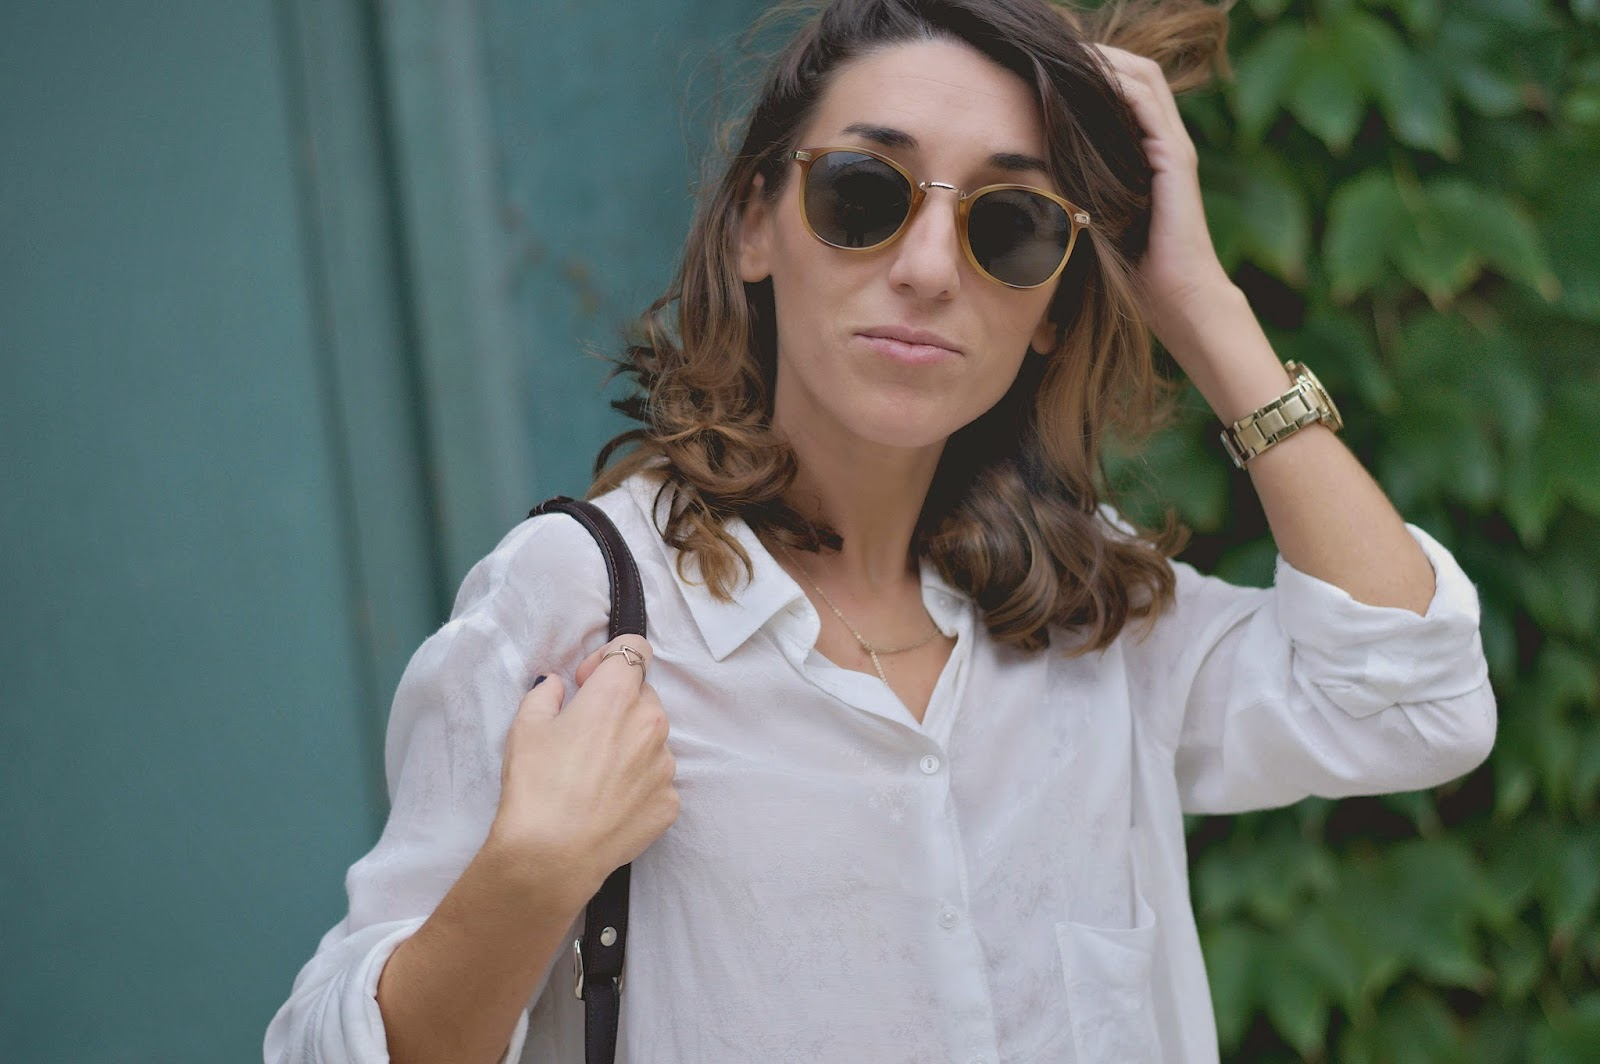 Camisa Mango, jeans Pull&Bear, collar &Other stories, H&M sunnies, mocasines Geox